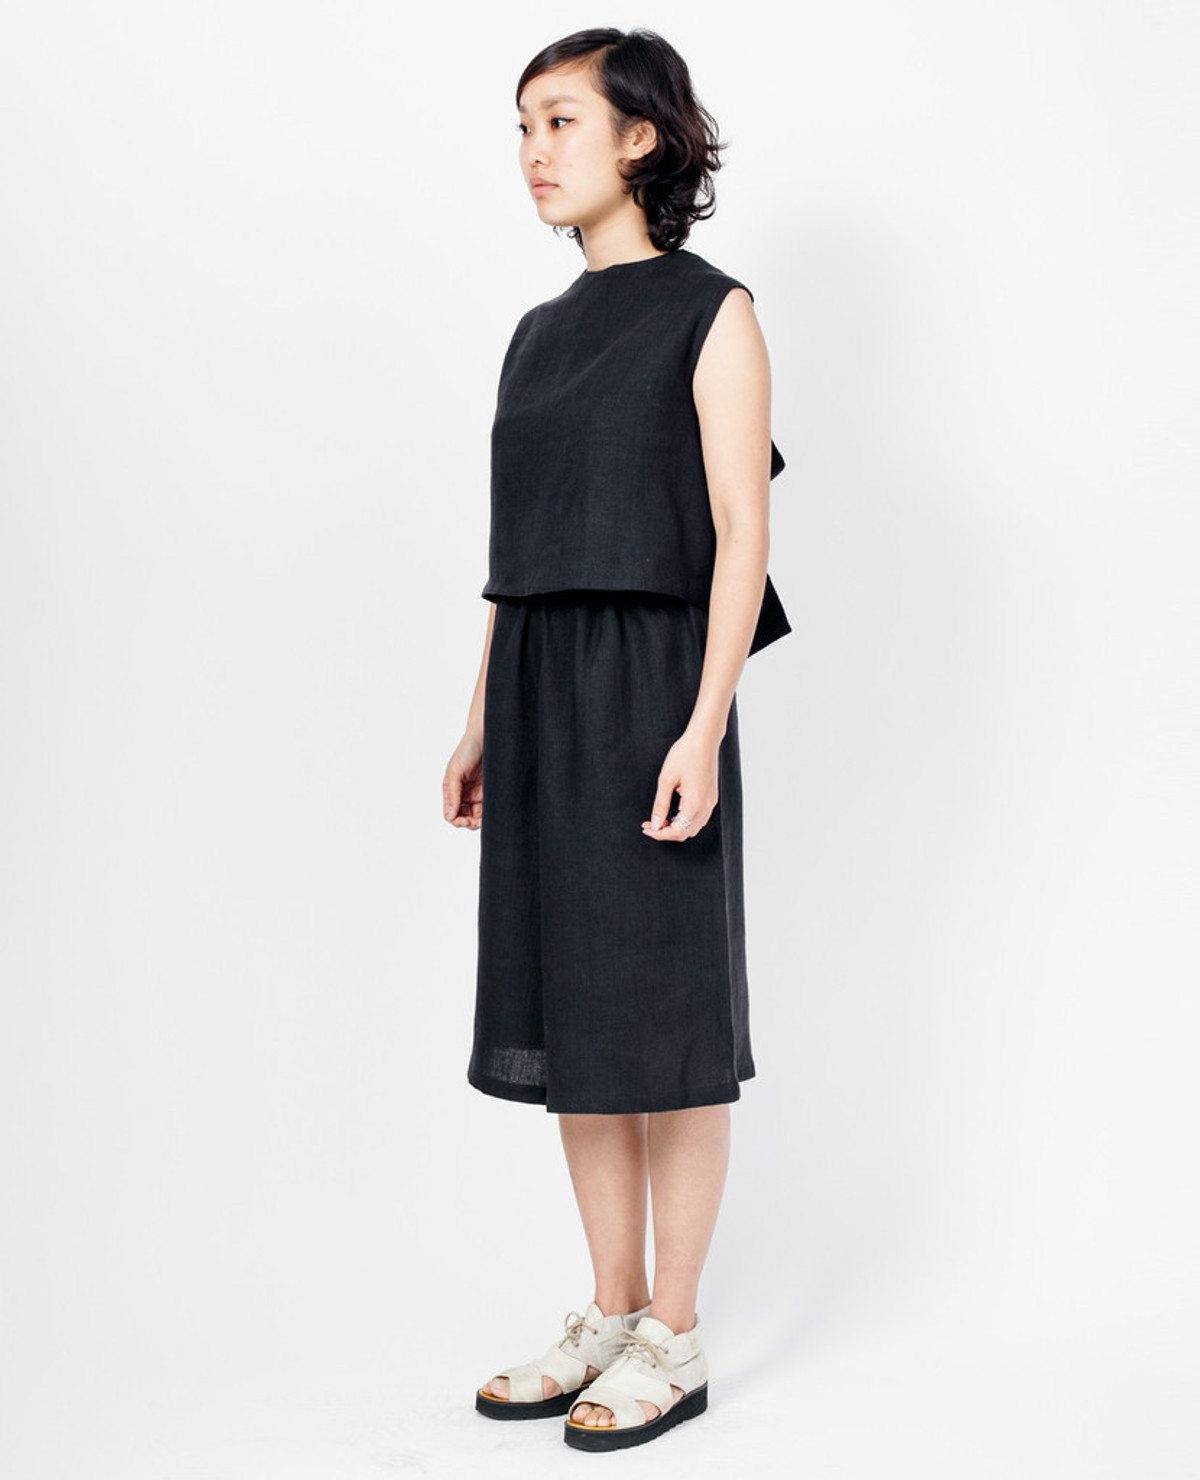 Kinski Top - Black